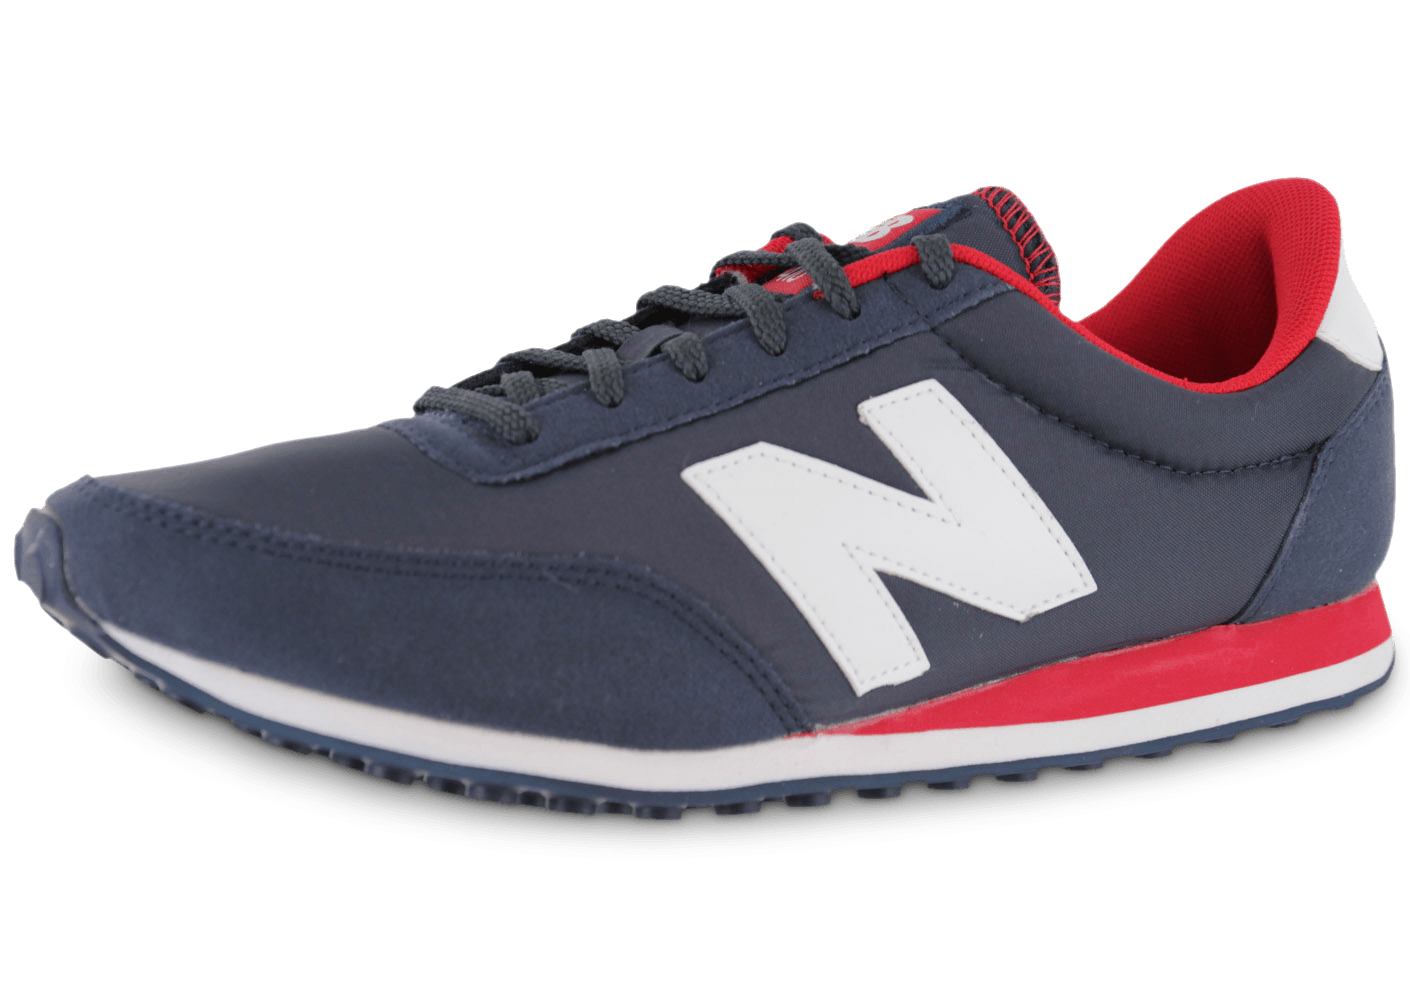 new balance u410 bleu marine chaussures baskets homme chausport. Black Bedroom Furniture Sets. Home Design Ideas